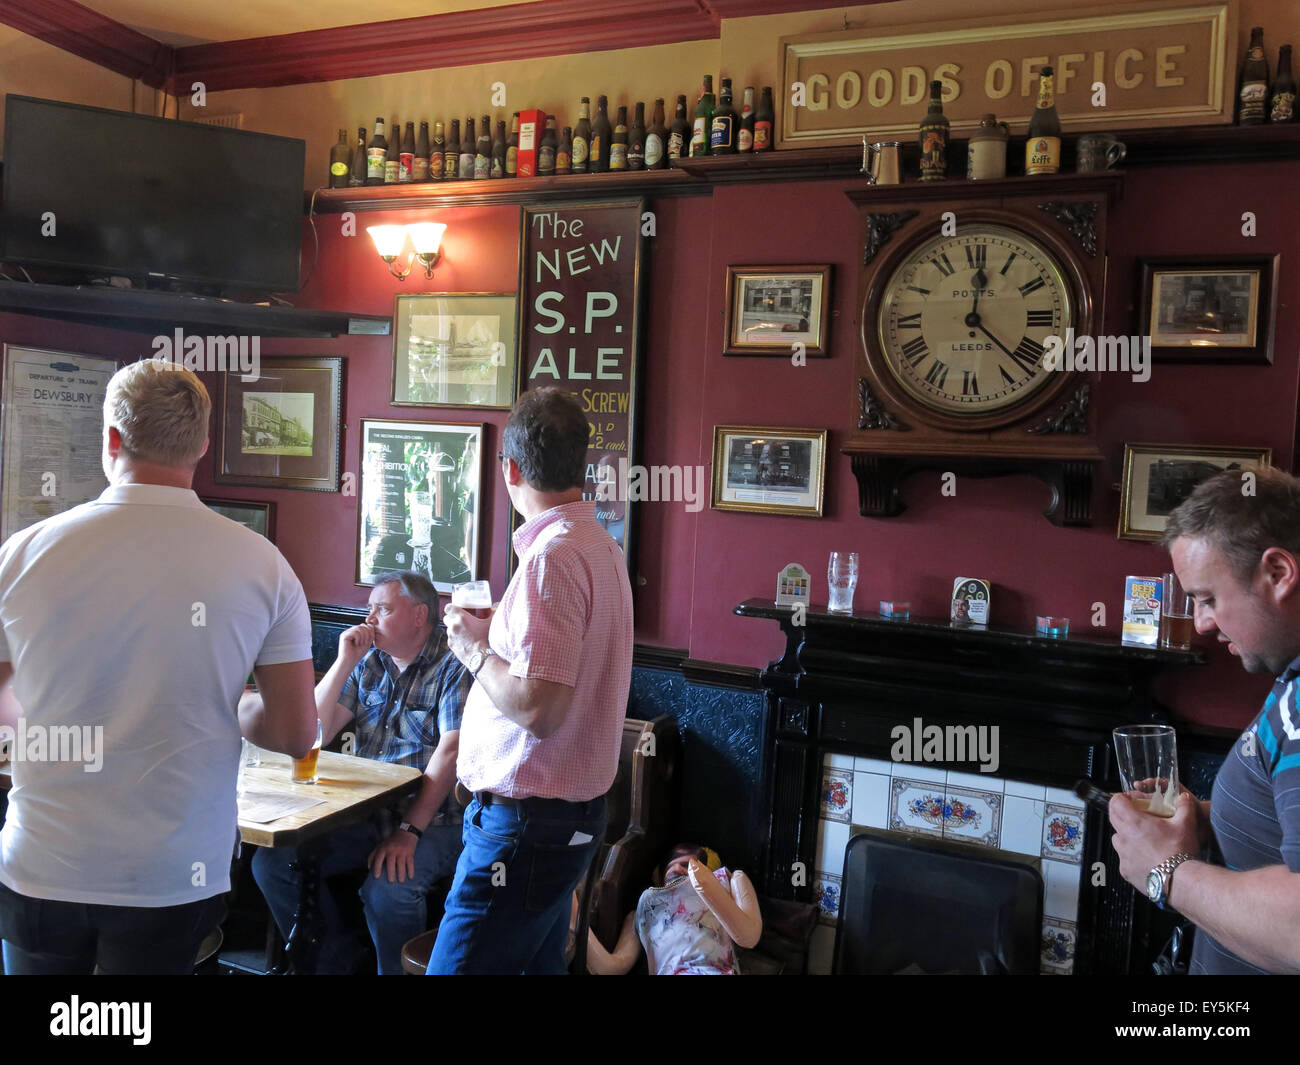 Real,Ale,realale,CAMRA,aletrail,WestRiding,bar,pubs,bars,drinking,drinkers,trans,pennine,transpennine,train,trains,trail,train,ales,platform,buffet,cafe,sign,Stalybridge,public,inside,interior,with,drinkers,pints,pot,beer,beers,blond,bitter,clock,potts,Ale Train,Ale trail,GoTonySmith,Buy Pictures of,Buy Images Of